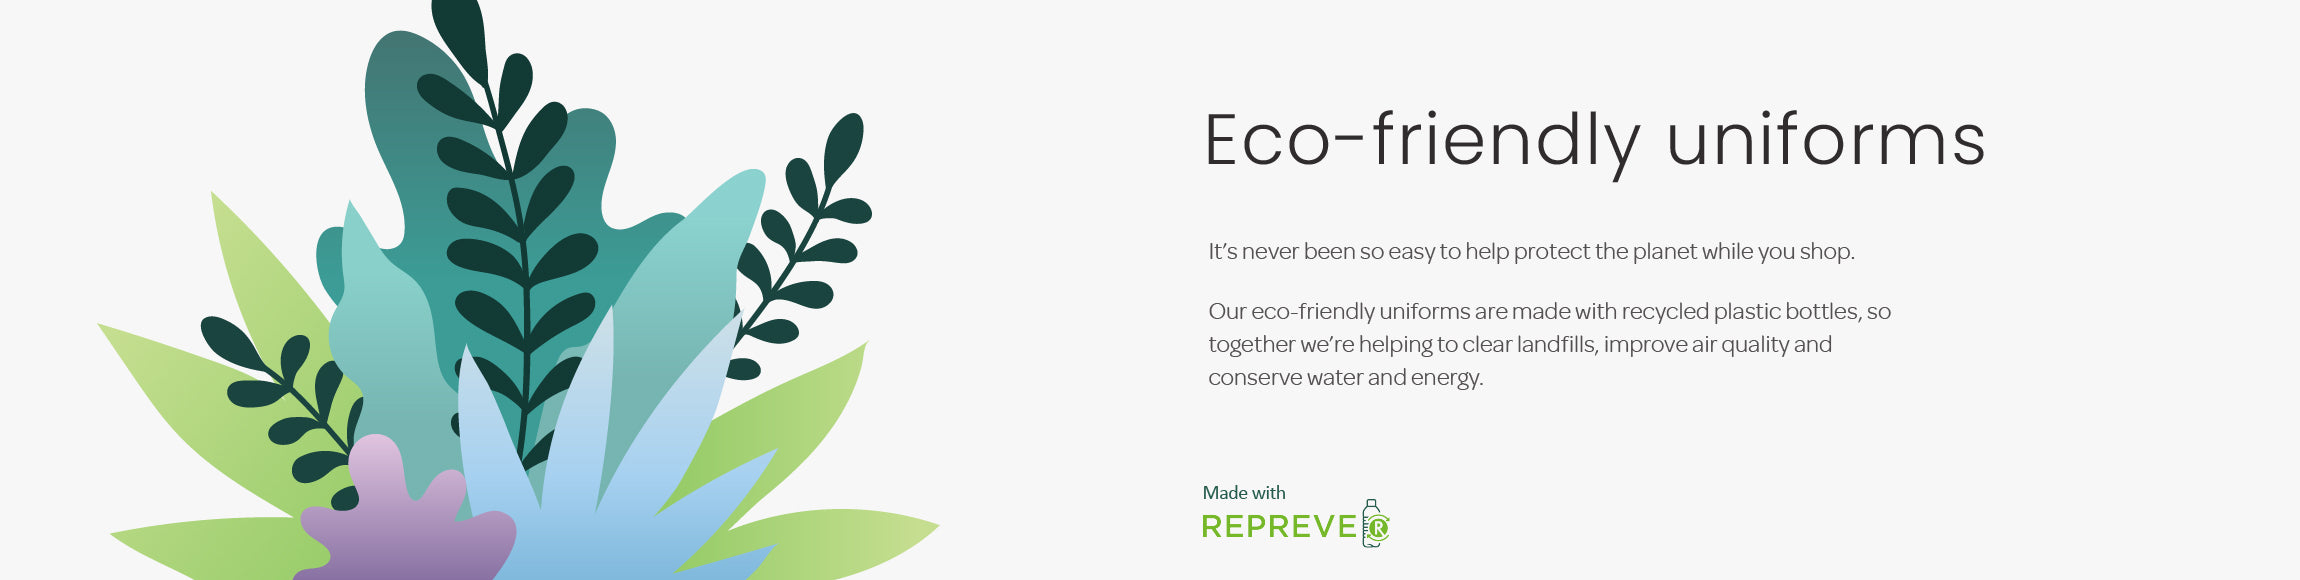 Eco-friendly uniforms, recycled uniforms, sustainable uniforms